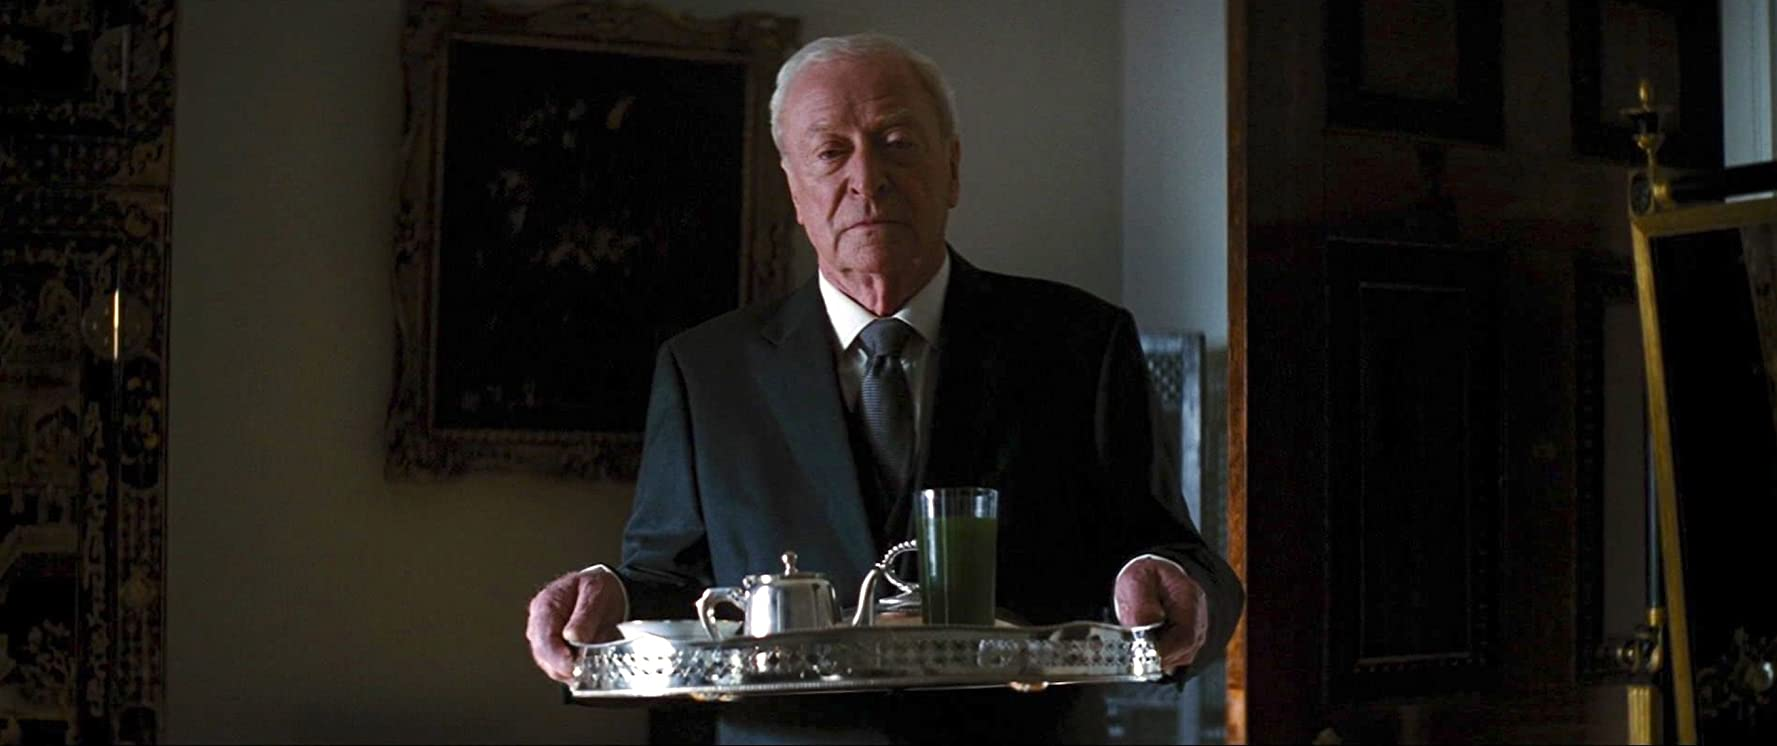 Michael Caine in The Dark Knight Rises (2012)